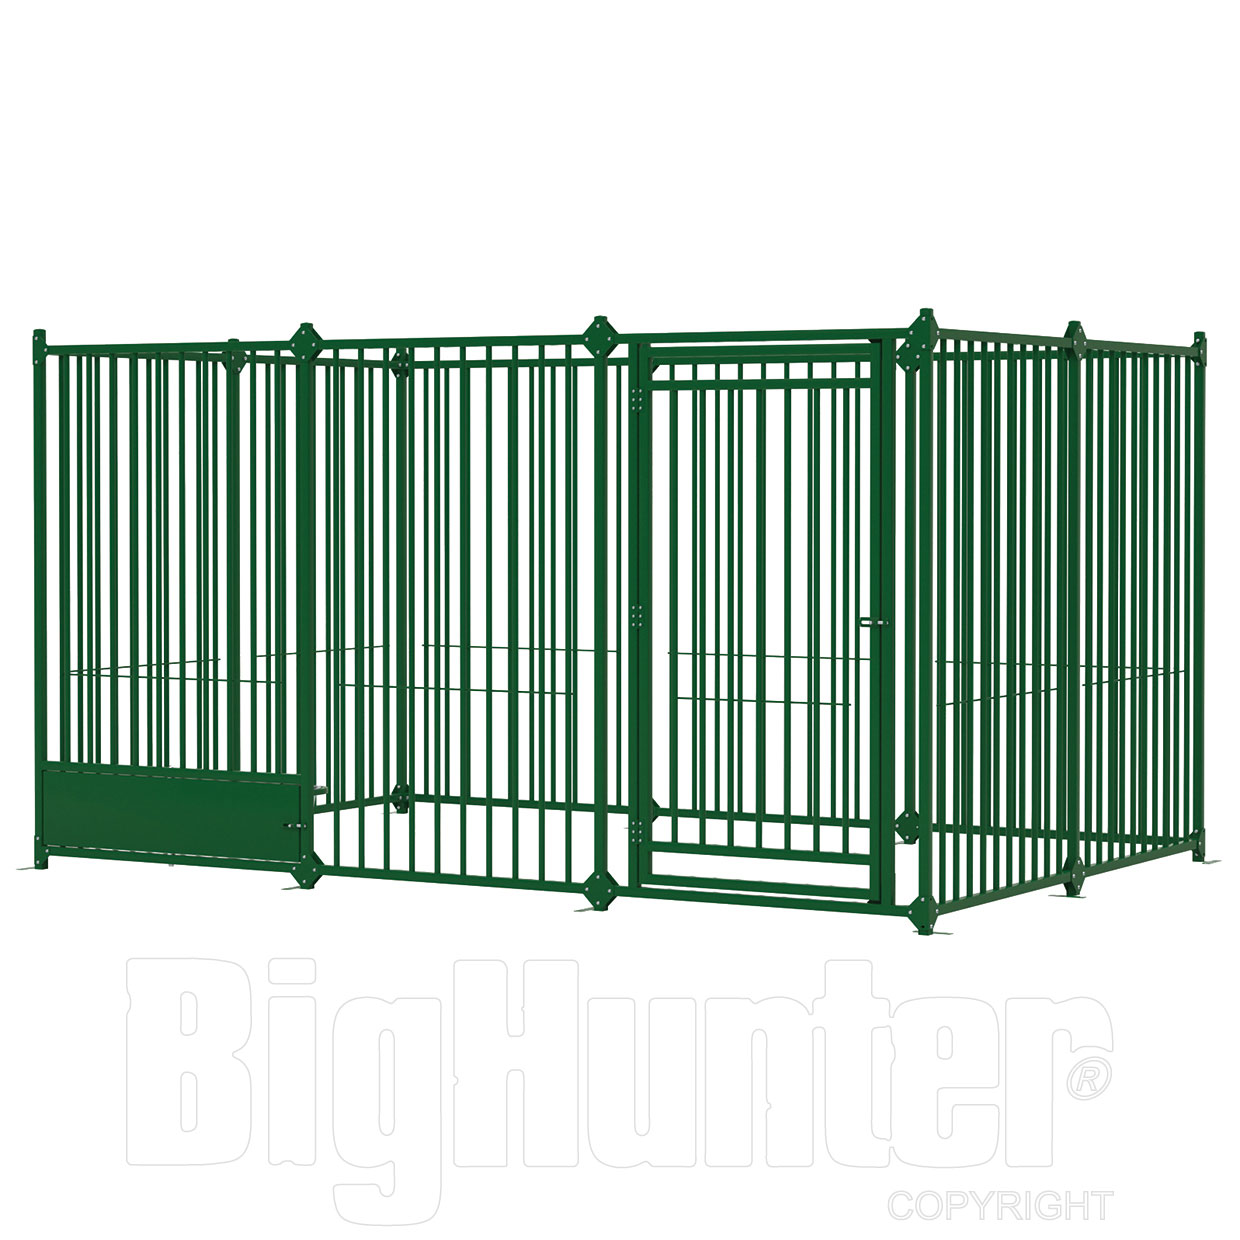 Ferplast recinto per cani modulare dog pen 3x2 - Recinto mobile per cani ...